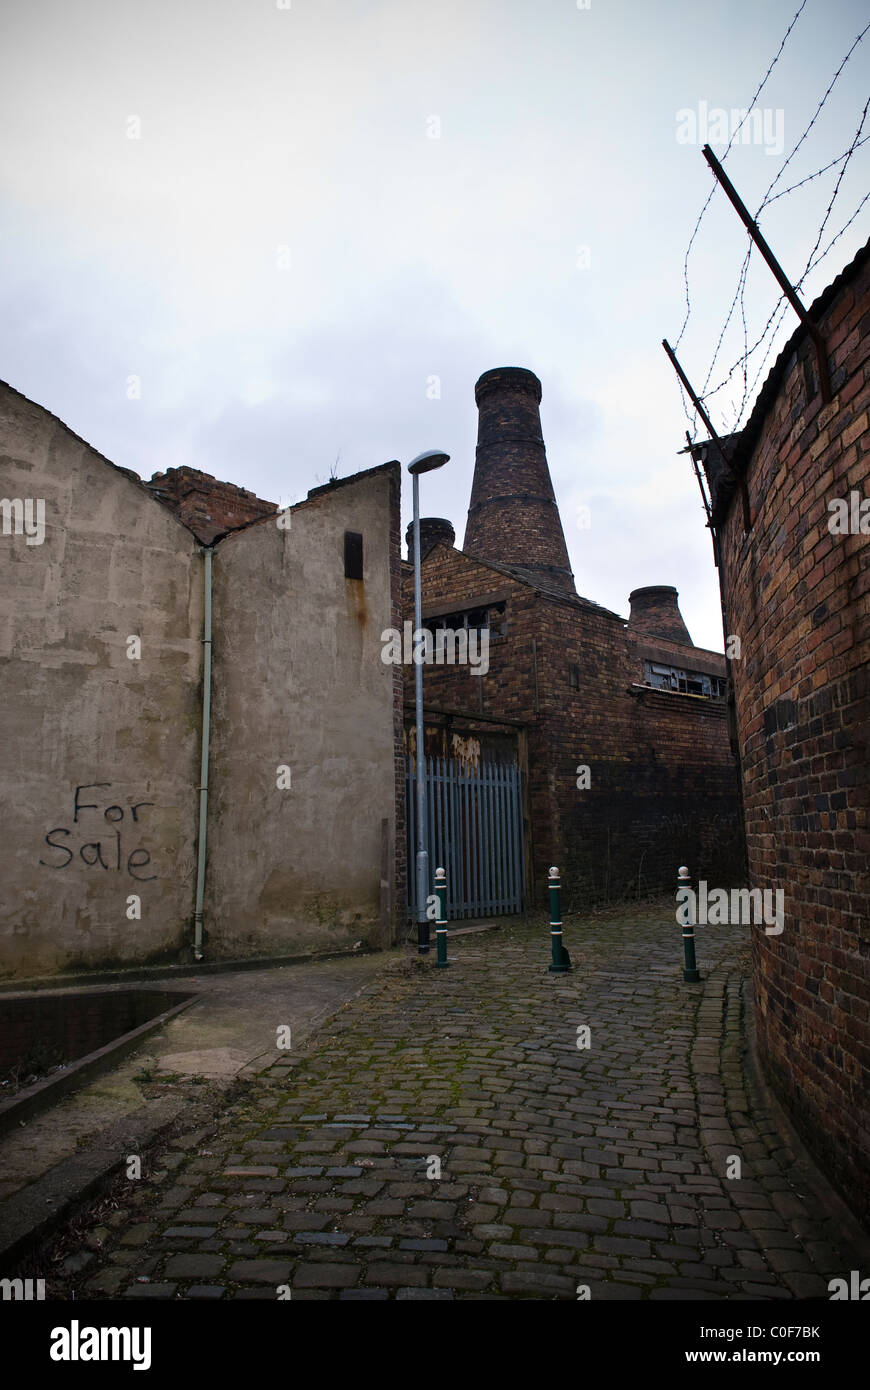 Old redundant pottery kiln chimneys and factories in Stoke-on-Trent, Staffordshire, UK - Stock Image